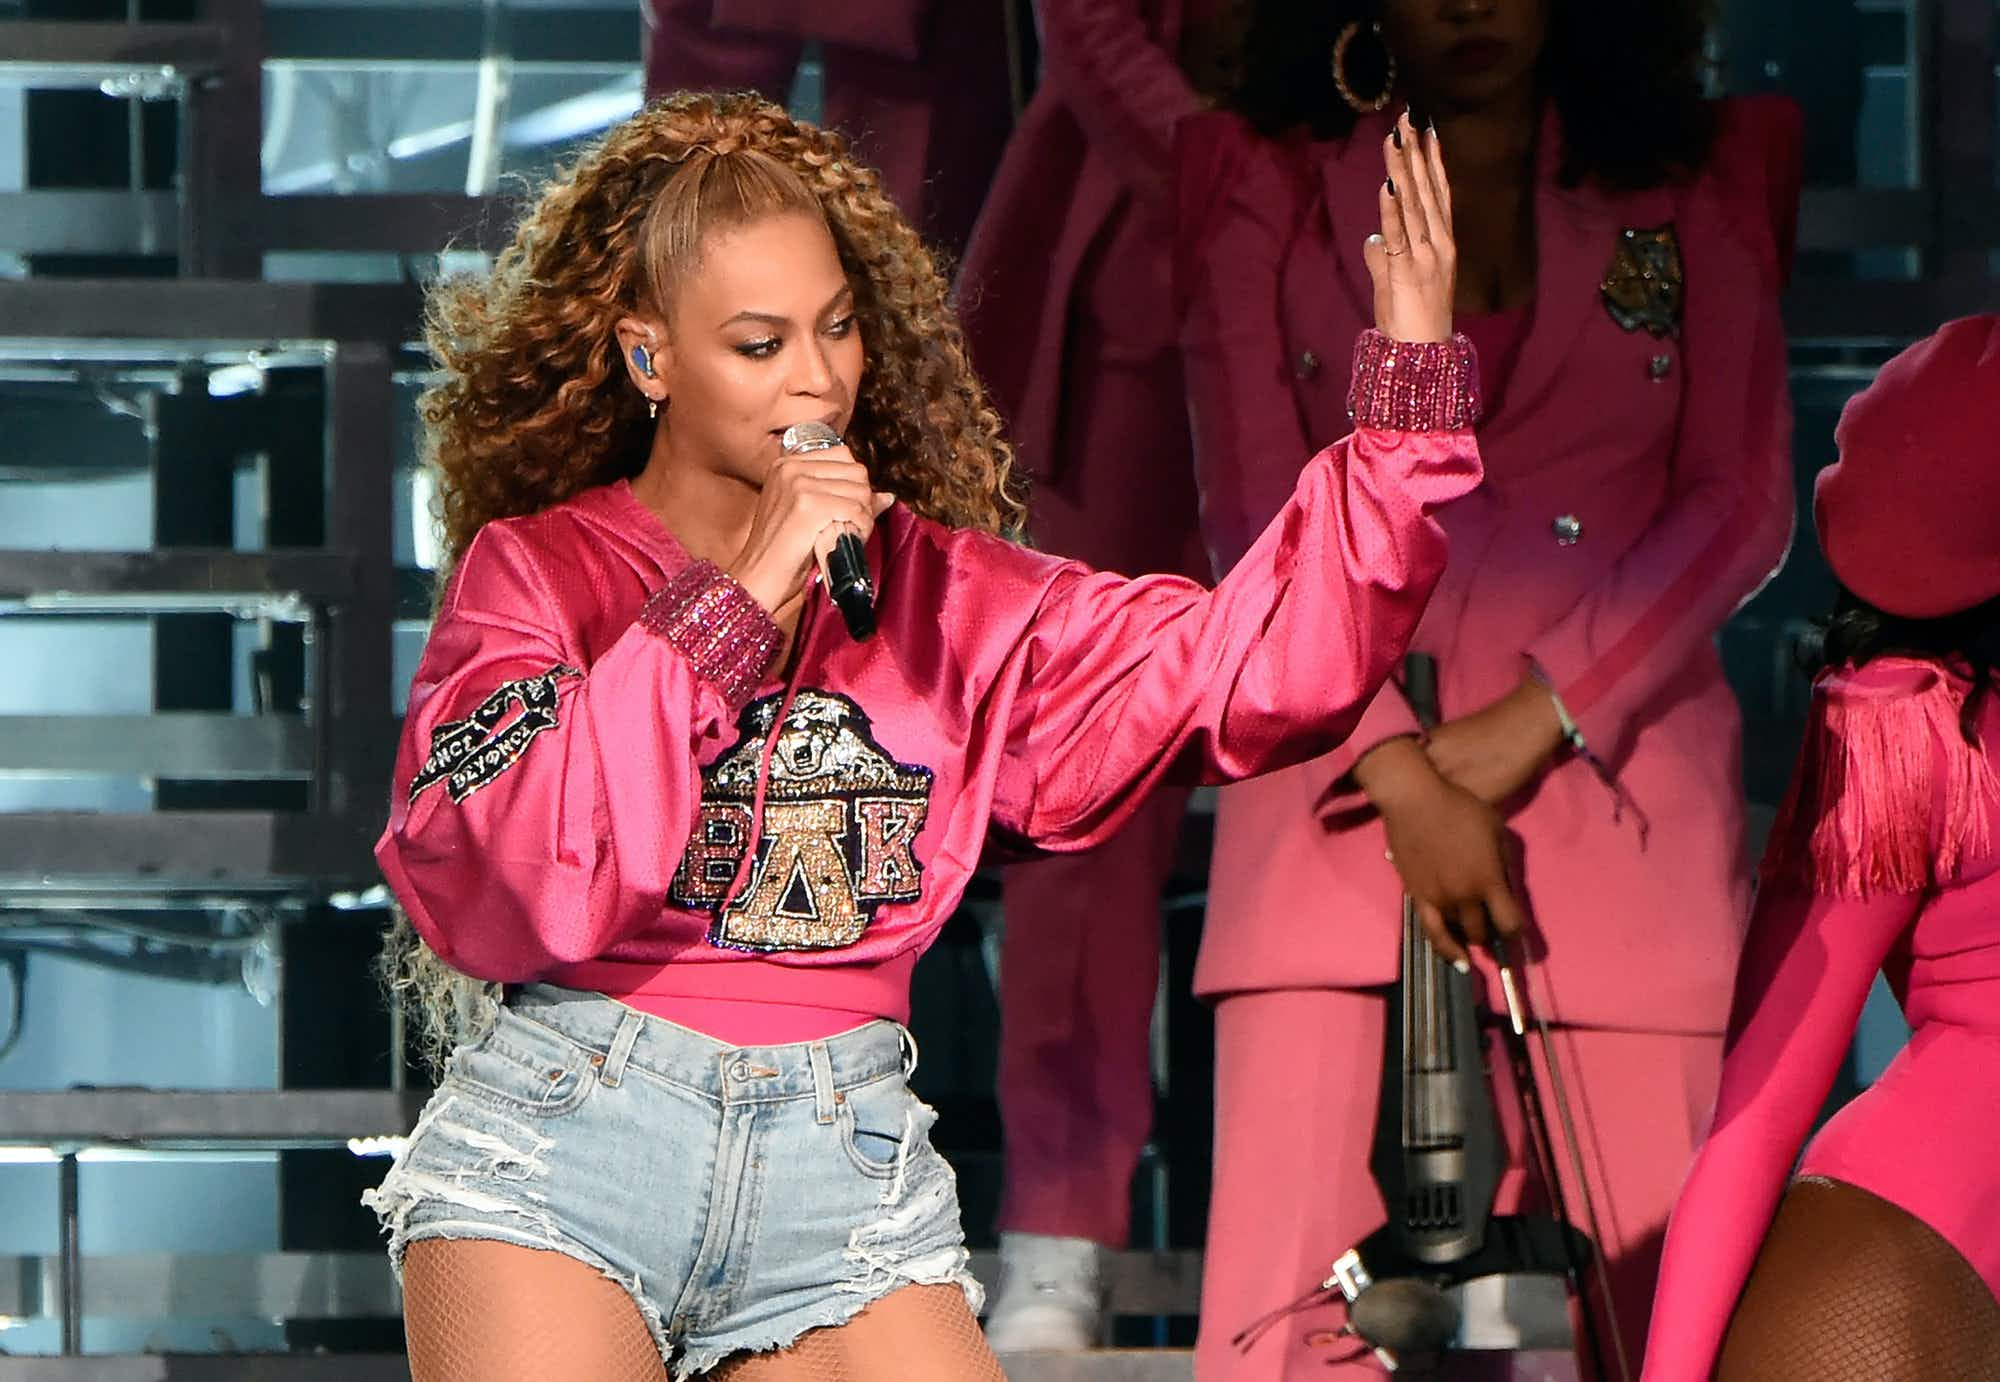 Shine up your halo at this Beyoncé mass in San Francisco